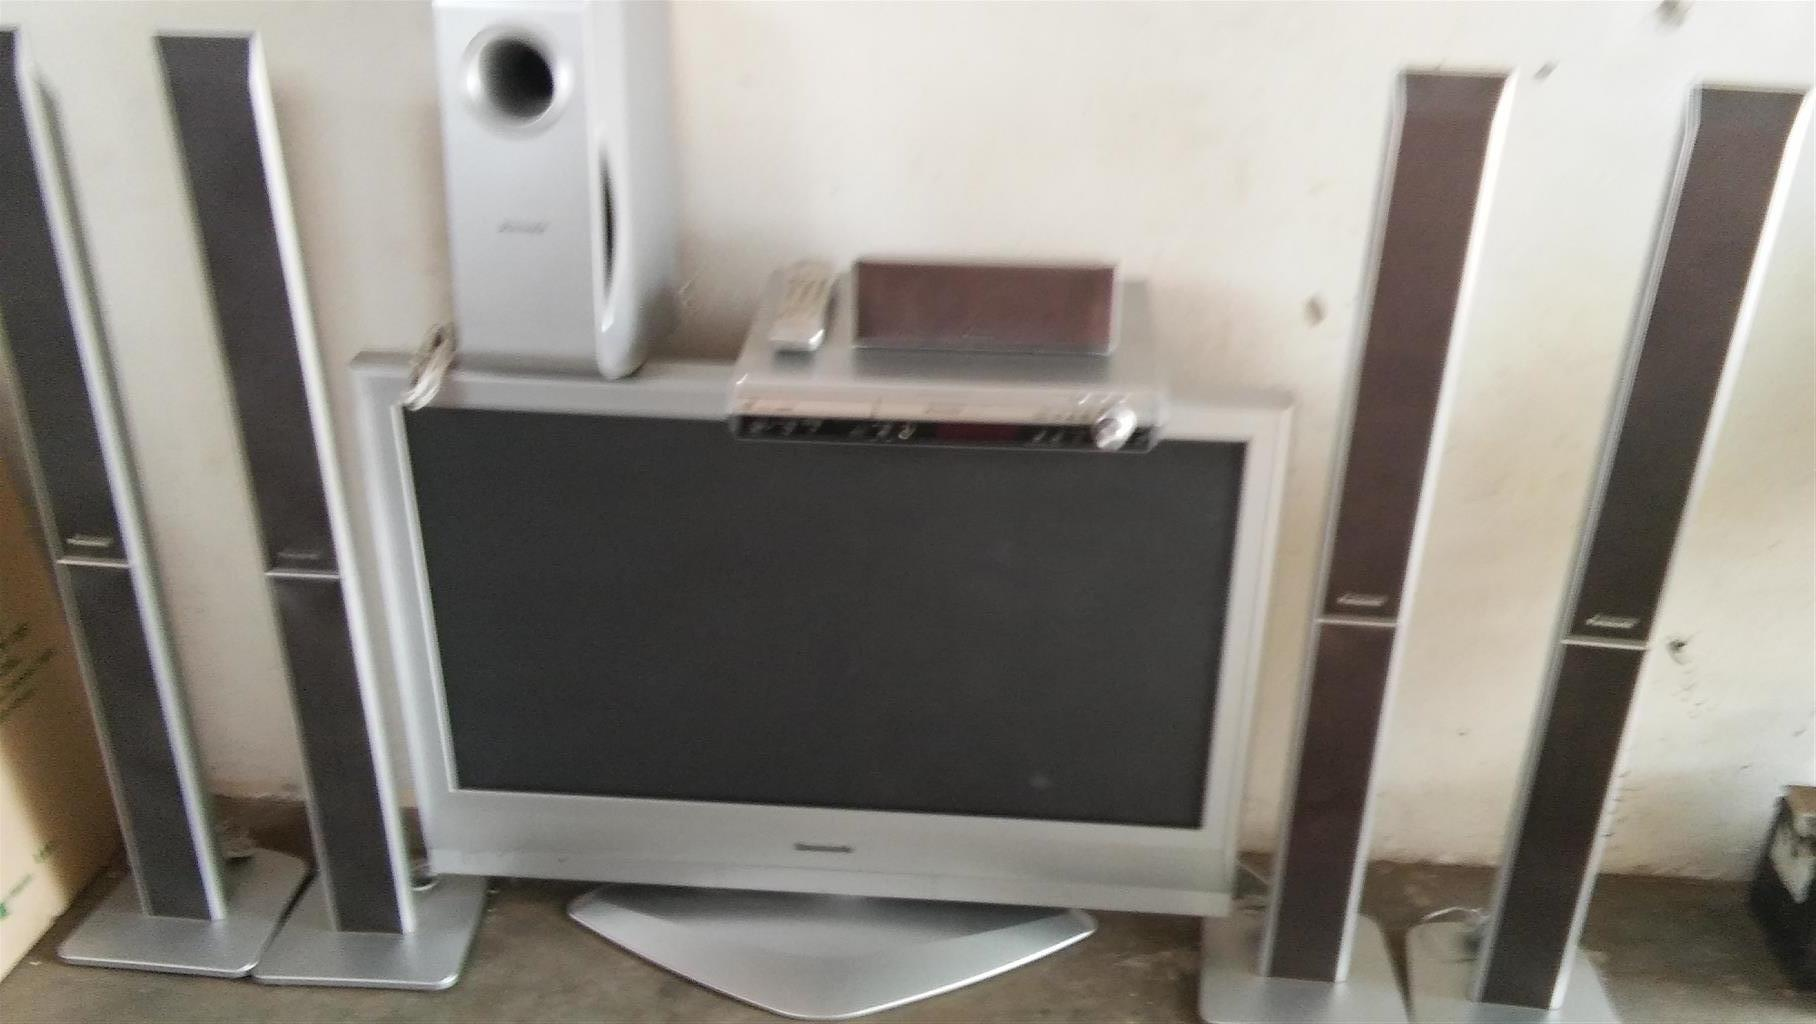 Panasonic 42 inch Flat screen TV and Home Theatre system